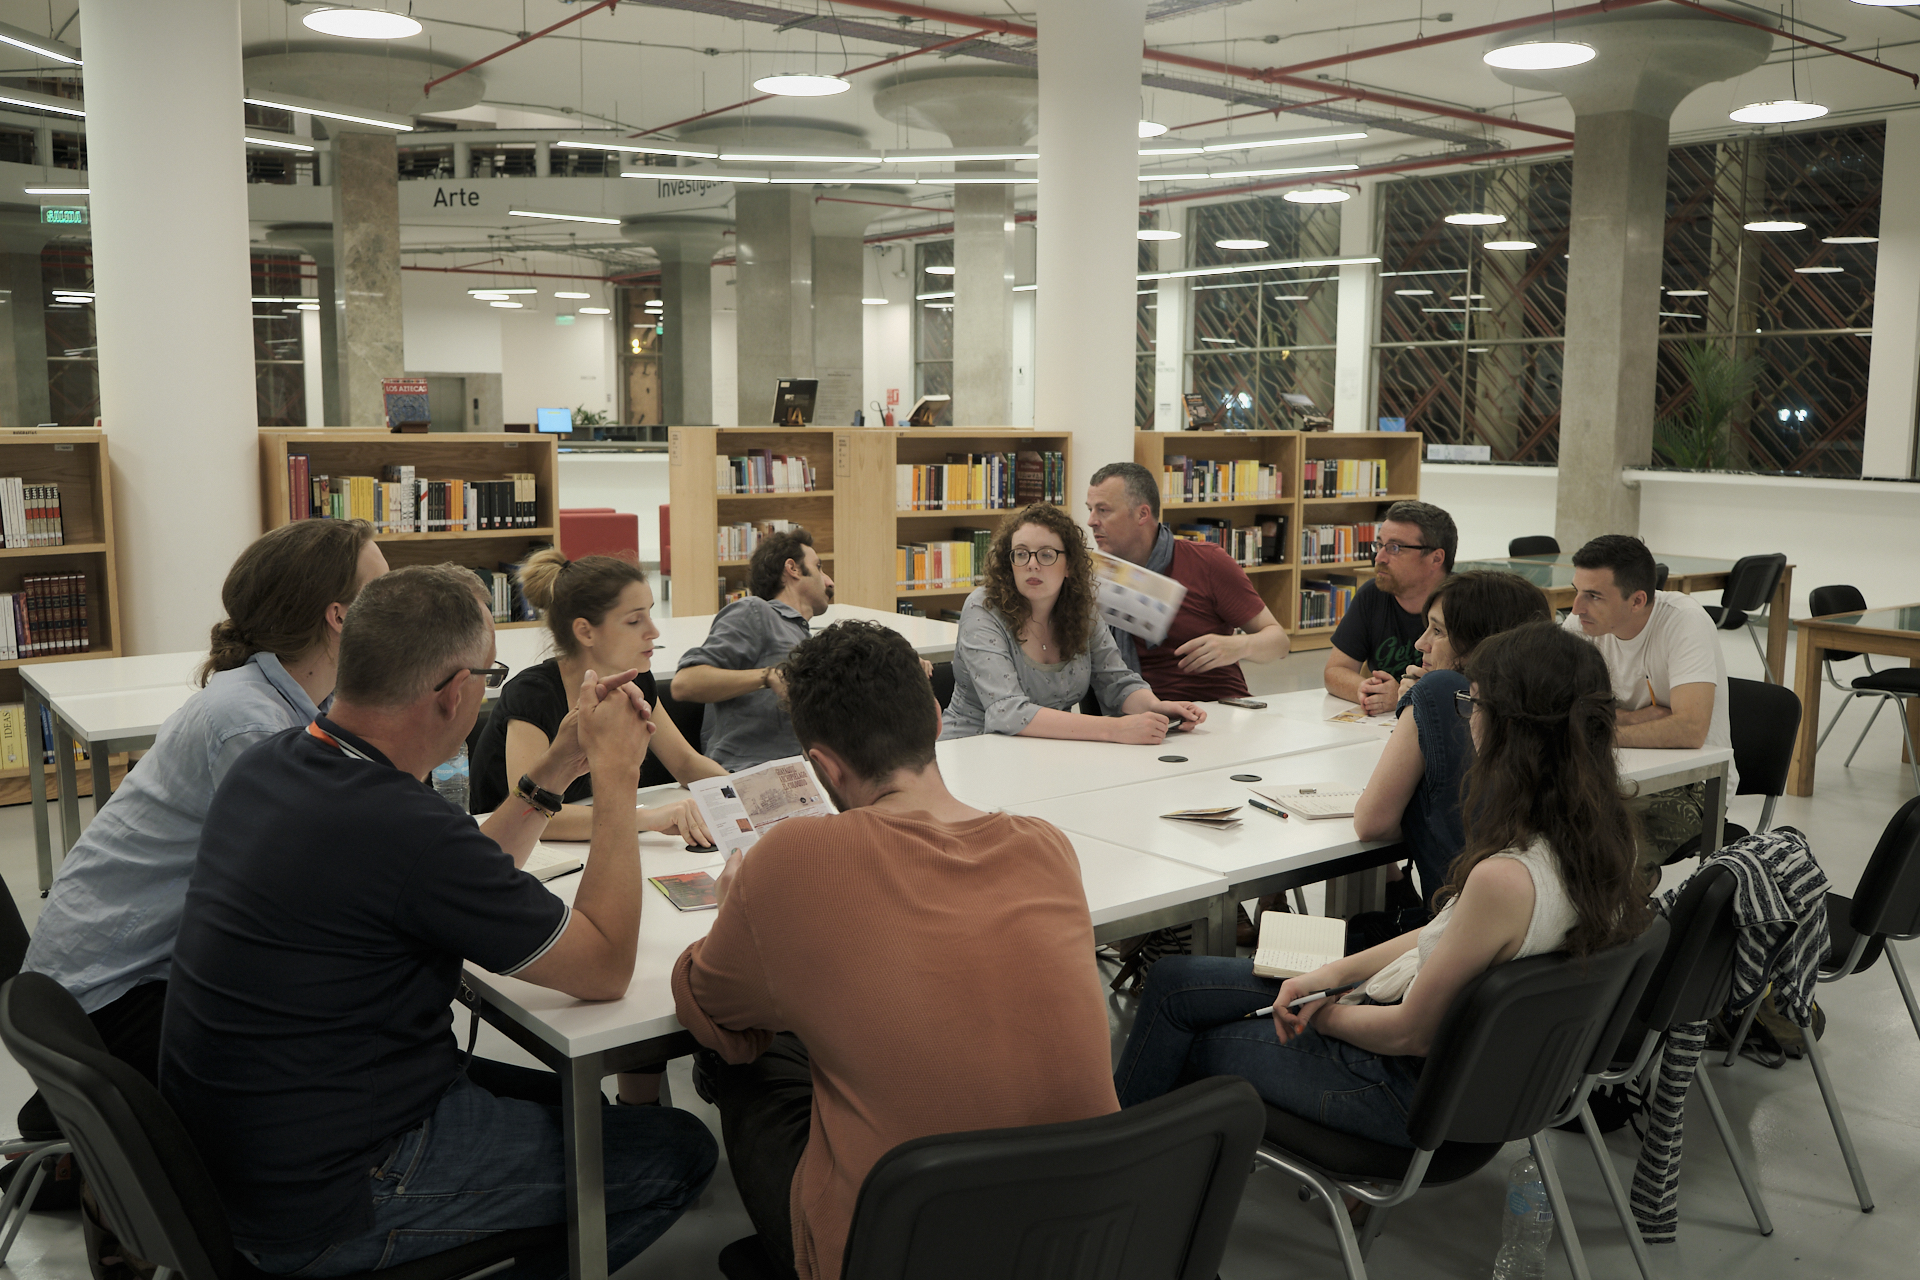 Secondees from GradCam (TU Dublin) and IRI-Centre Pompidou (France) finalising details of the exhibition with hosts from Universidad de las Artes in Guayaquil. Photograph by John Beattie.